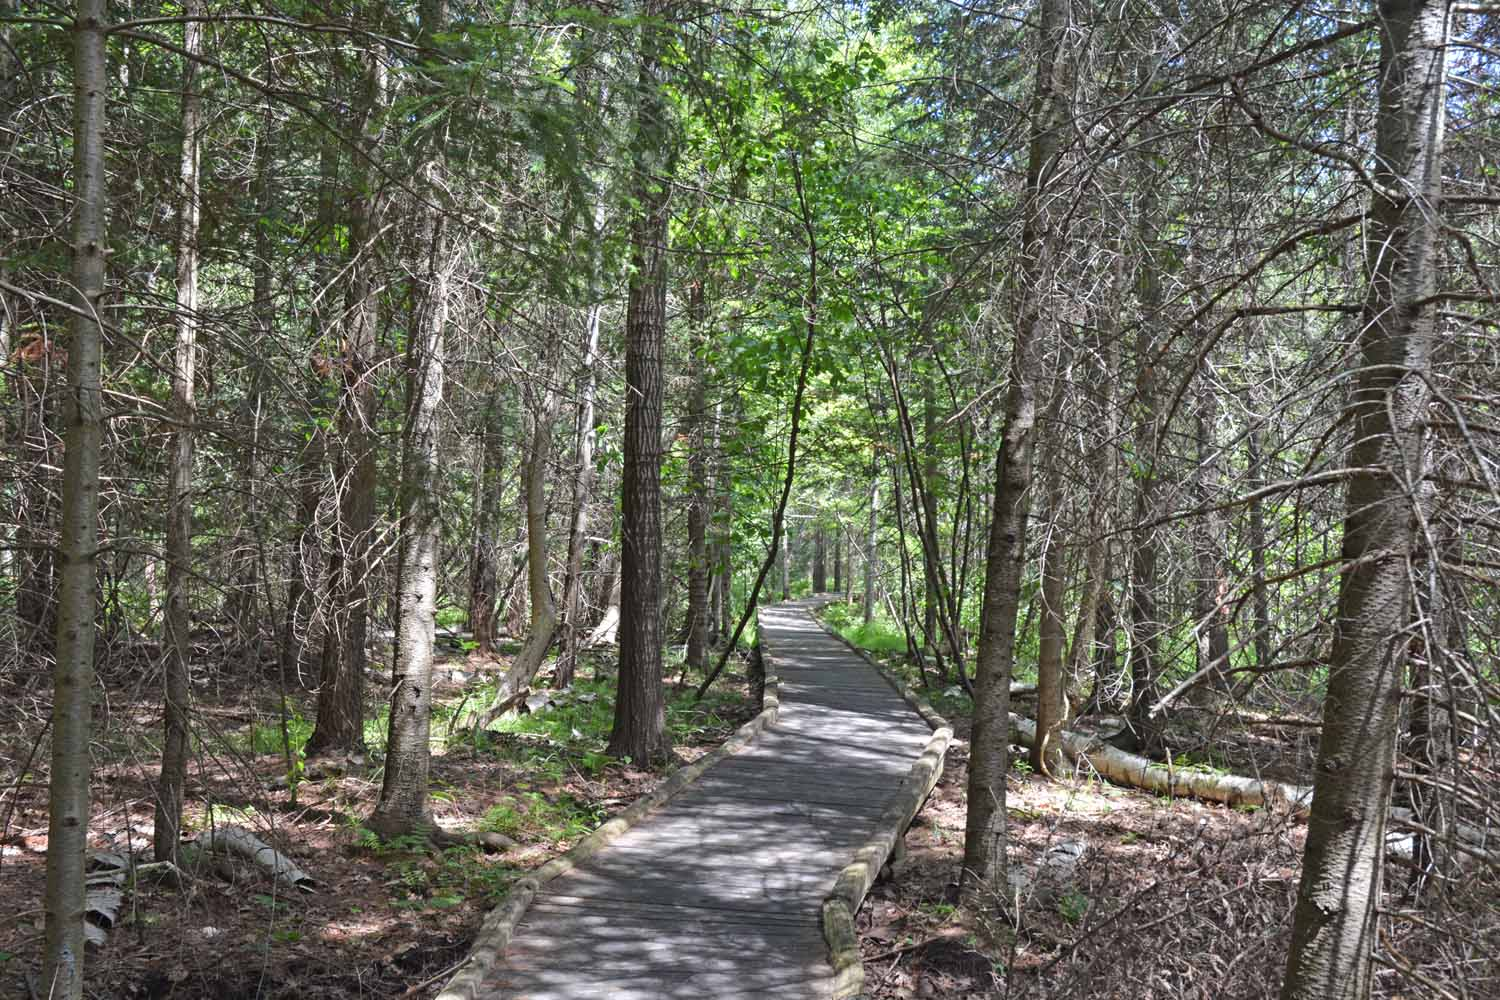 Many Improved Trails for Hiking And Cross Country Skiing